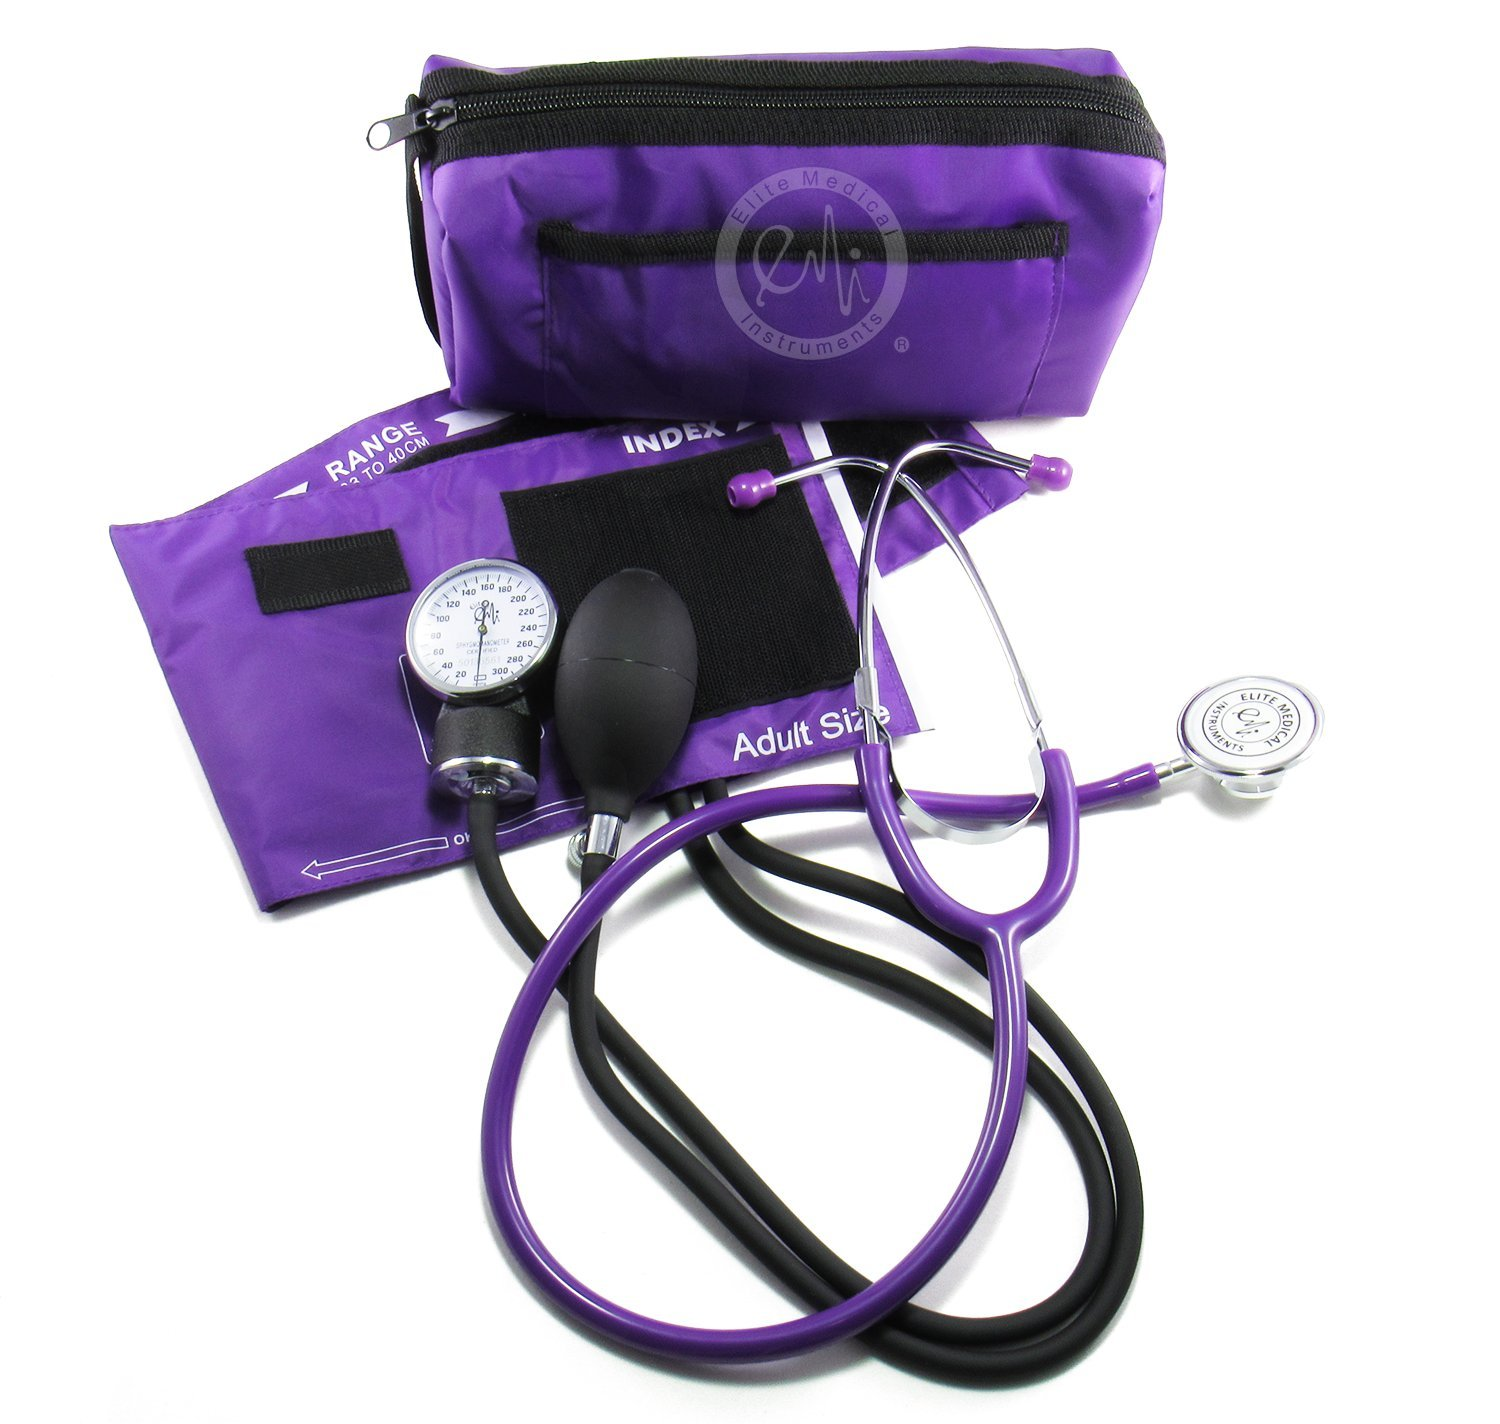 EMI #305 PURPLE Aneroid Sphygmomanometer Blood Pressure Monitor with Dual Head Stethoscope Set Kit